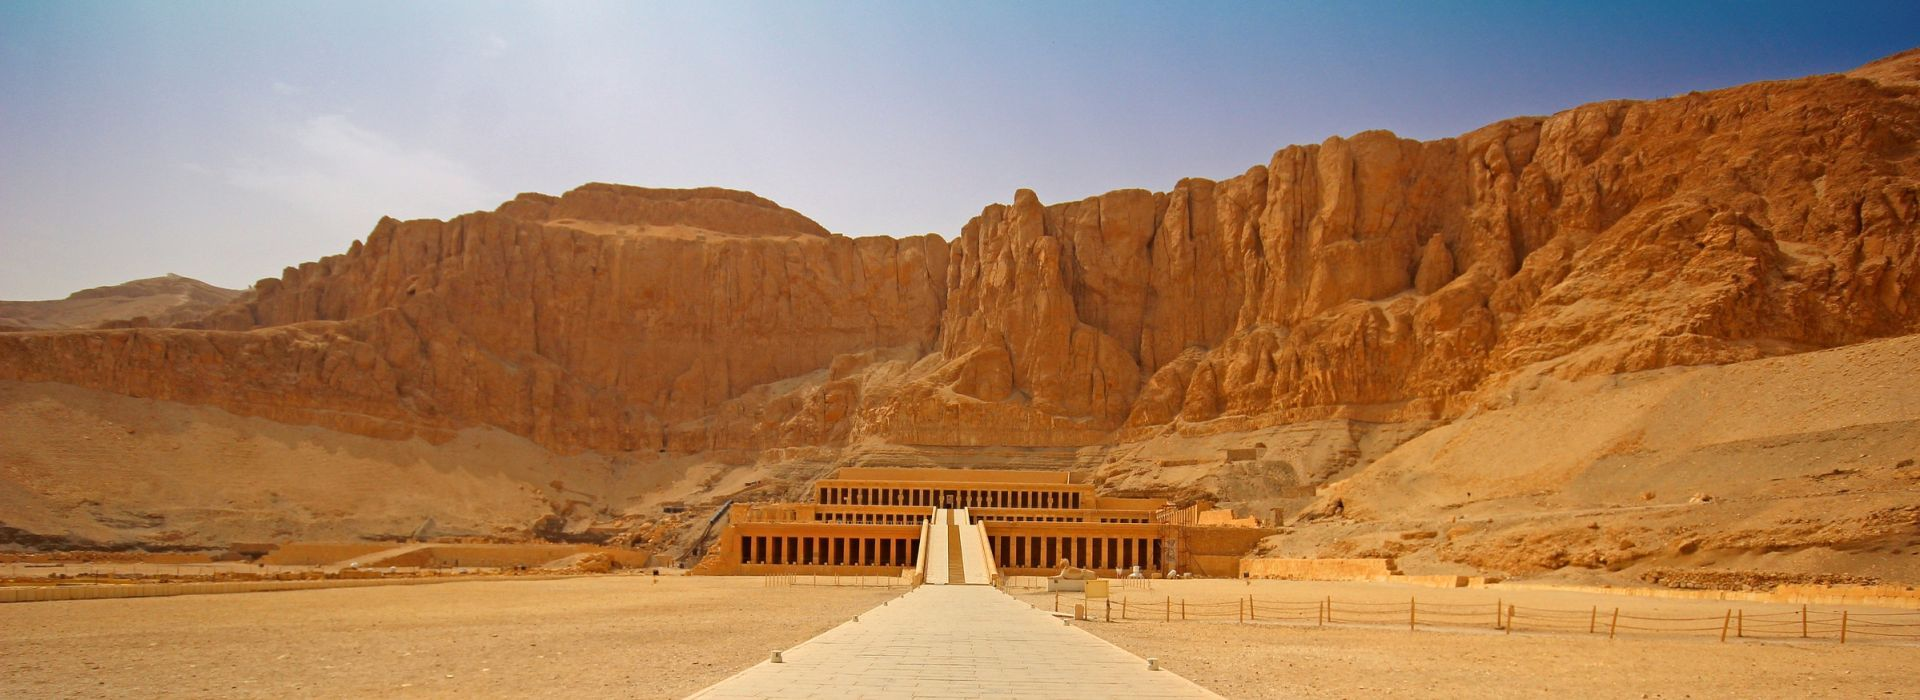 City sightseeing Tours in Hurghada